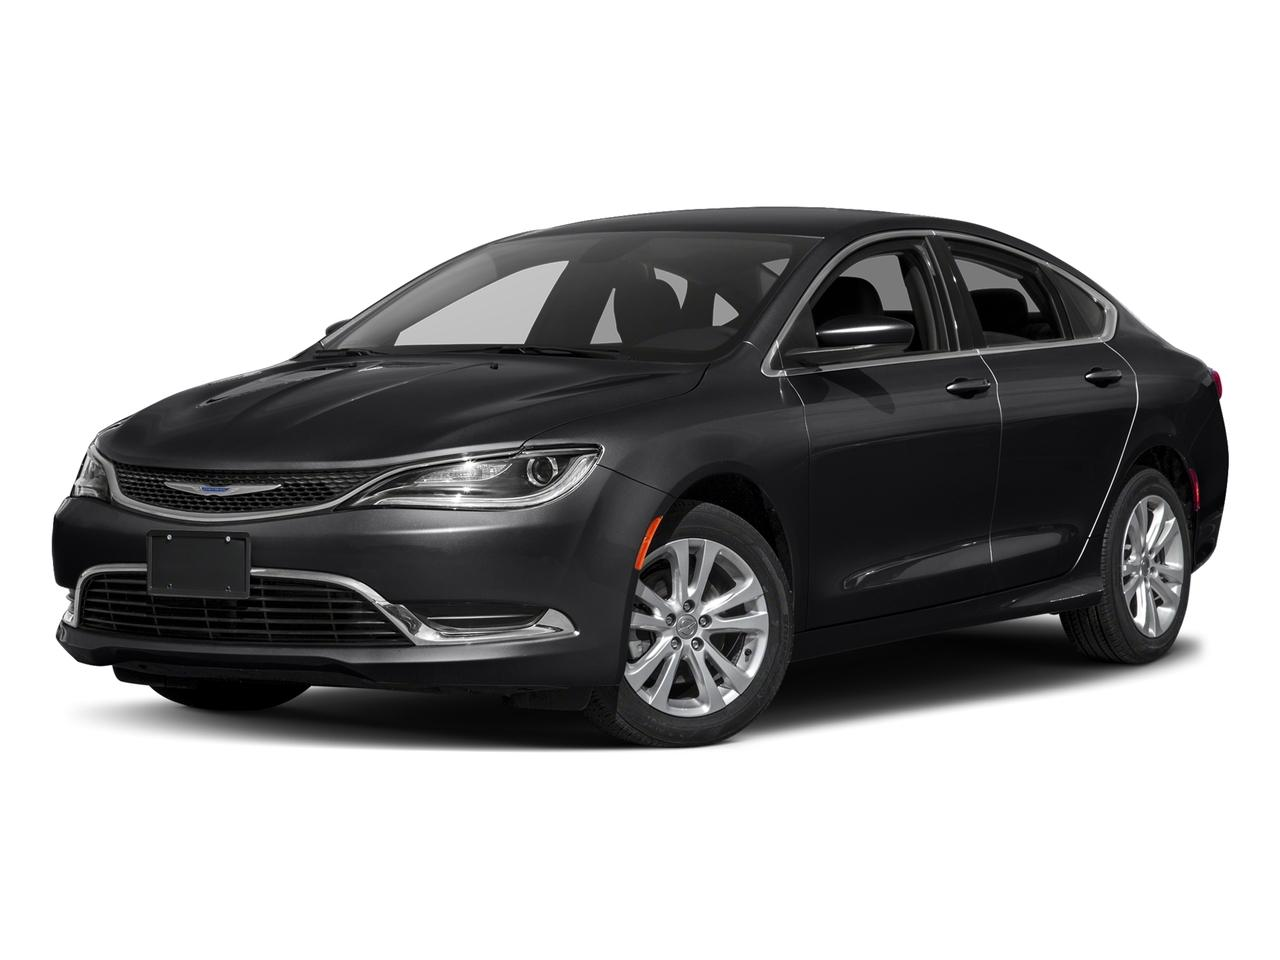 2017 Chrysler 200 Vehicle Photo in Plainfield, IL 60586